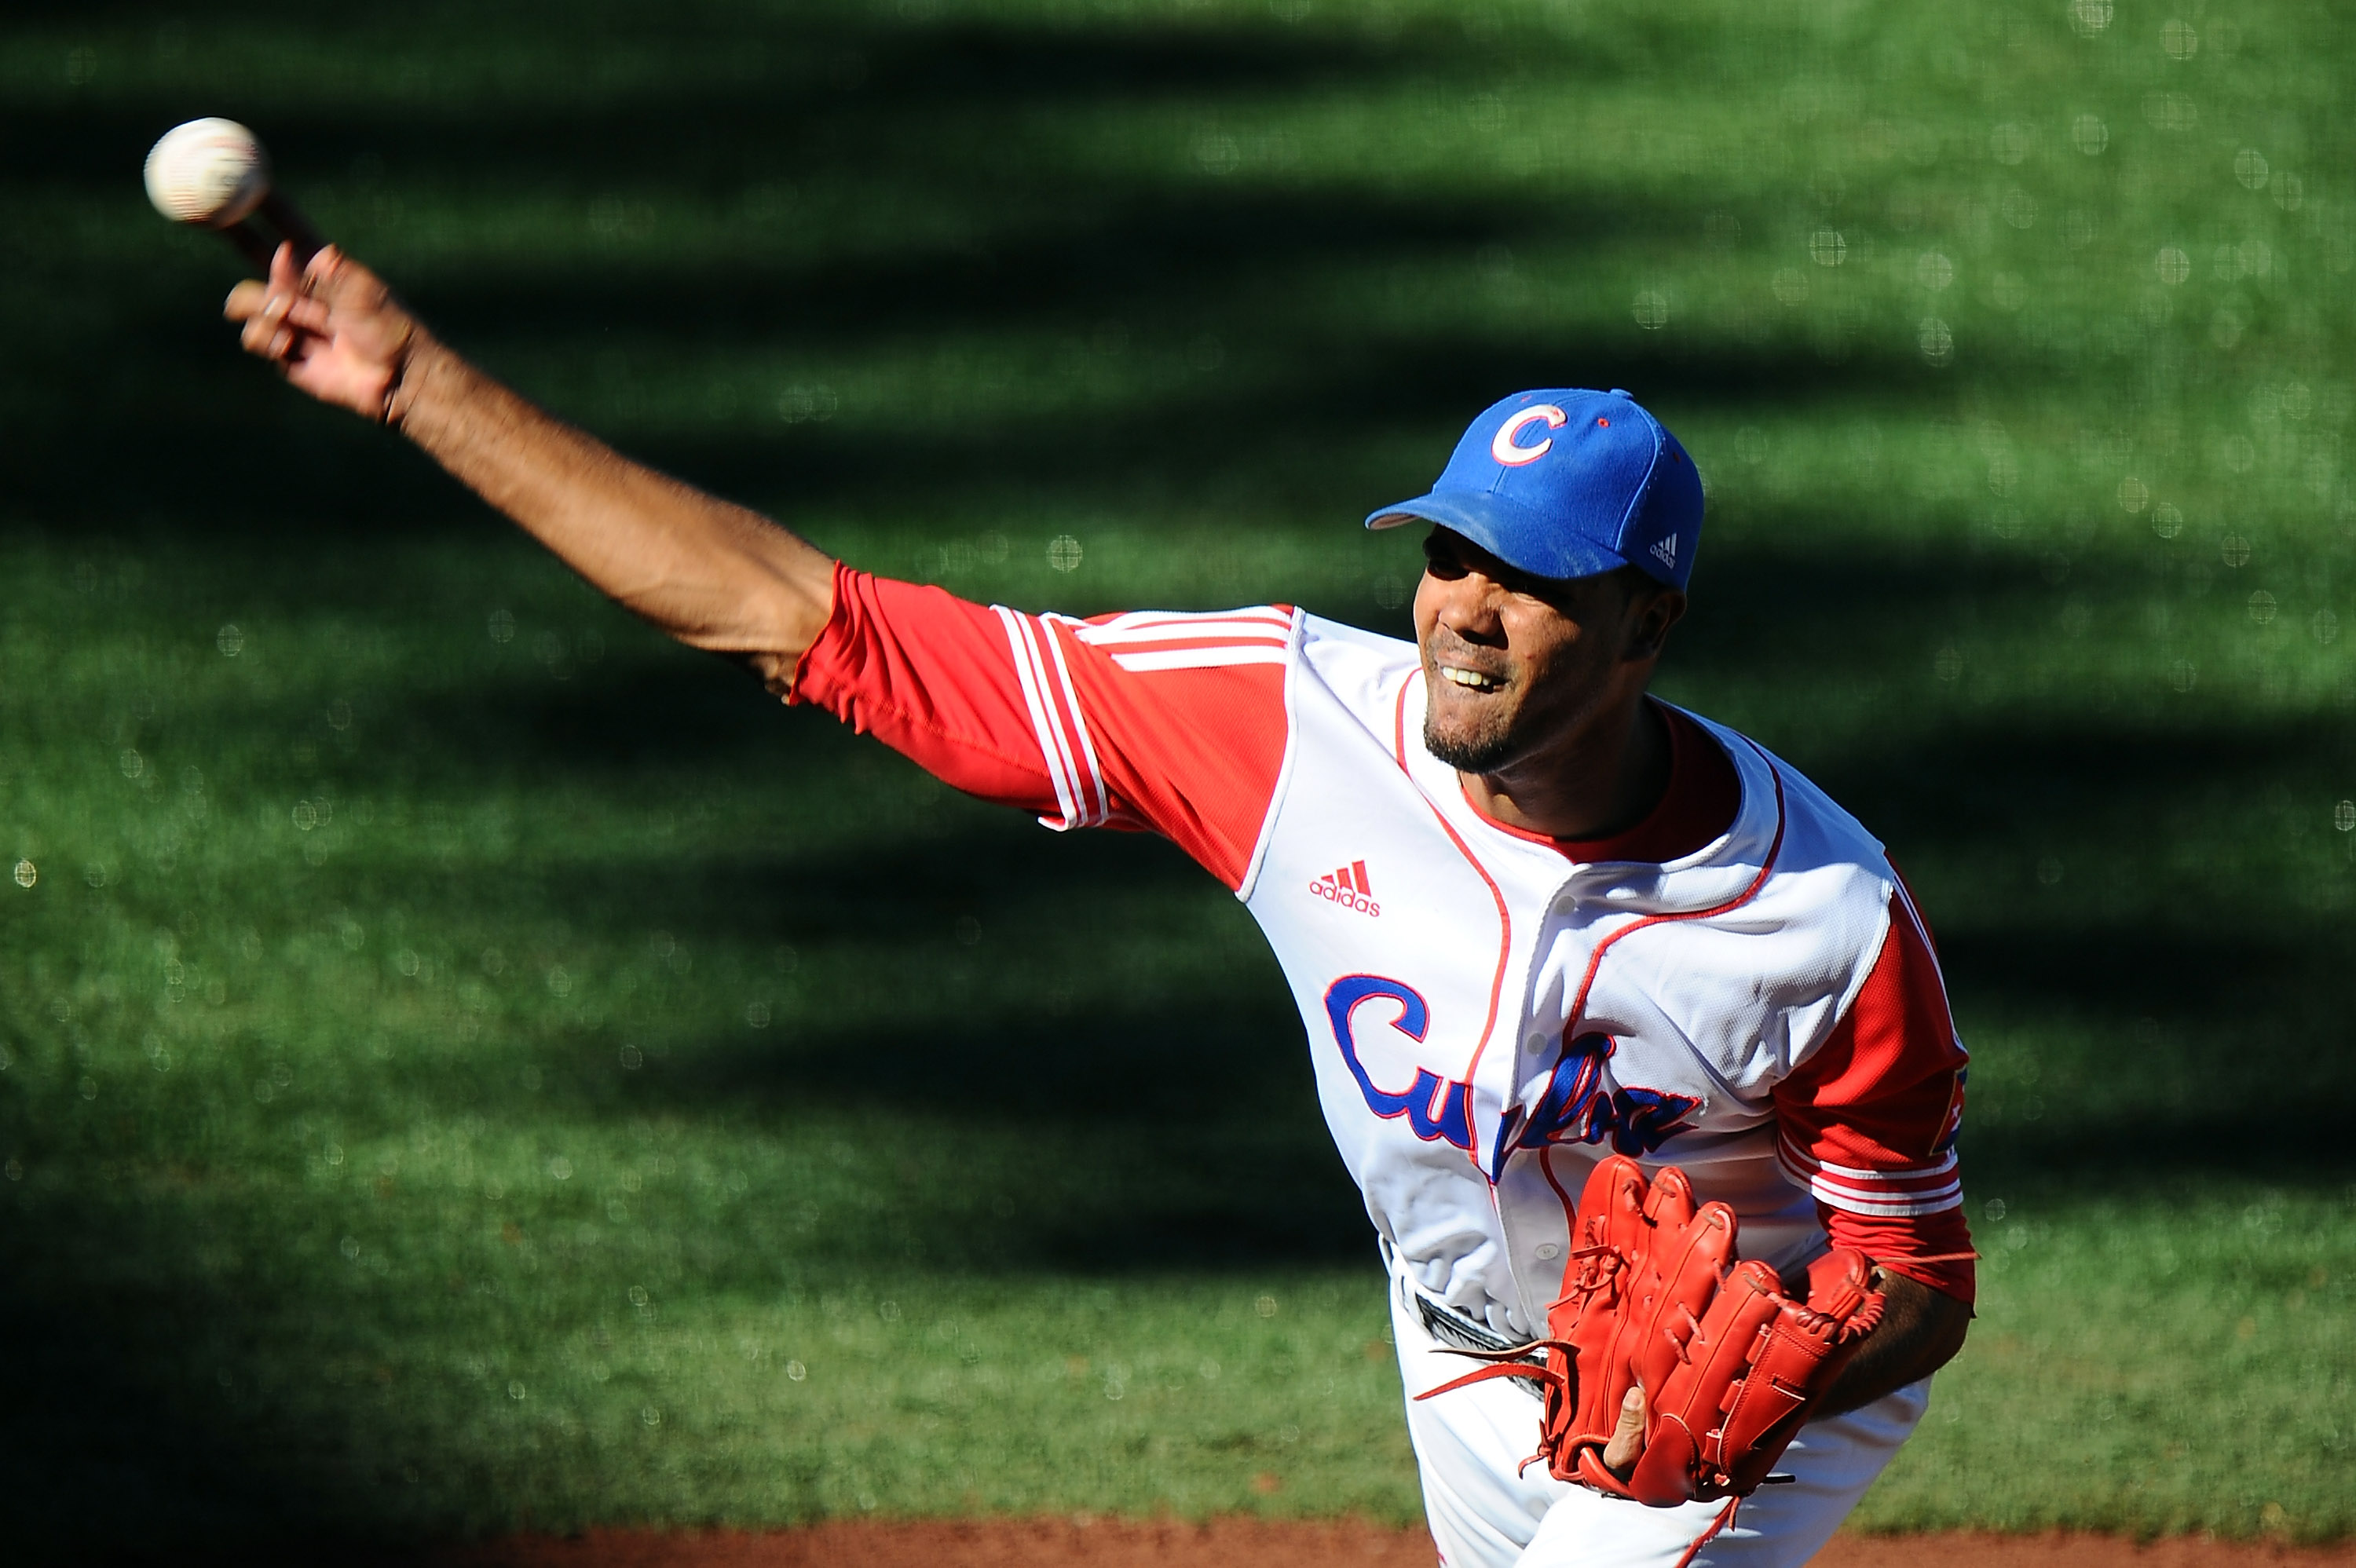 Miguel Alfredo Gonzalez of Cuba pitches in the Pan American Games. (Getty)